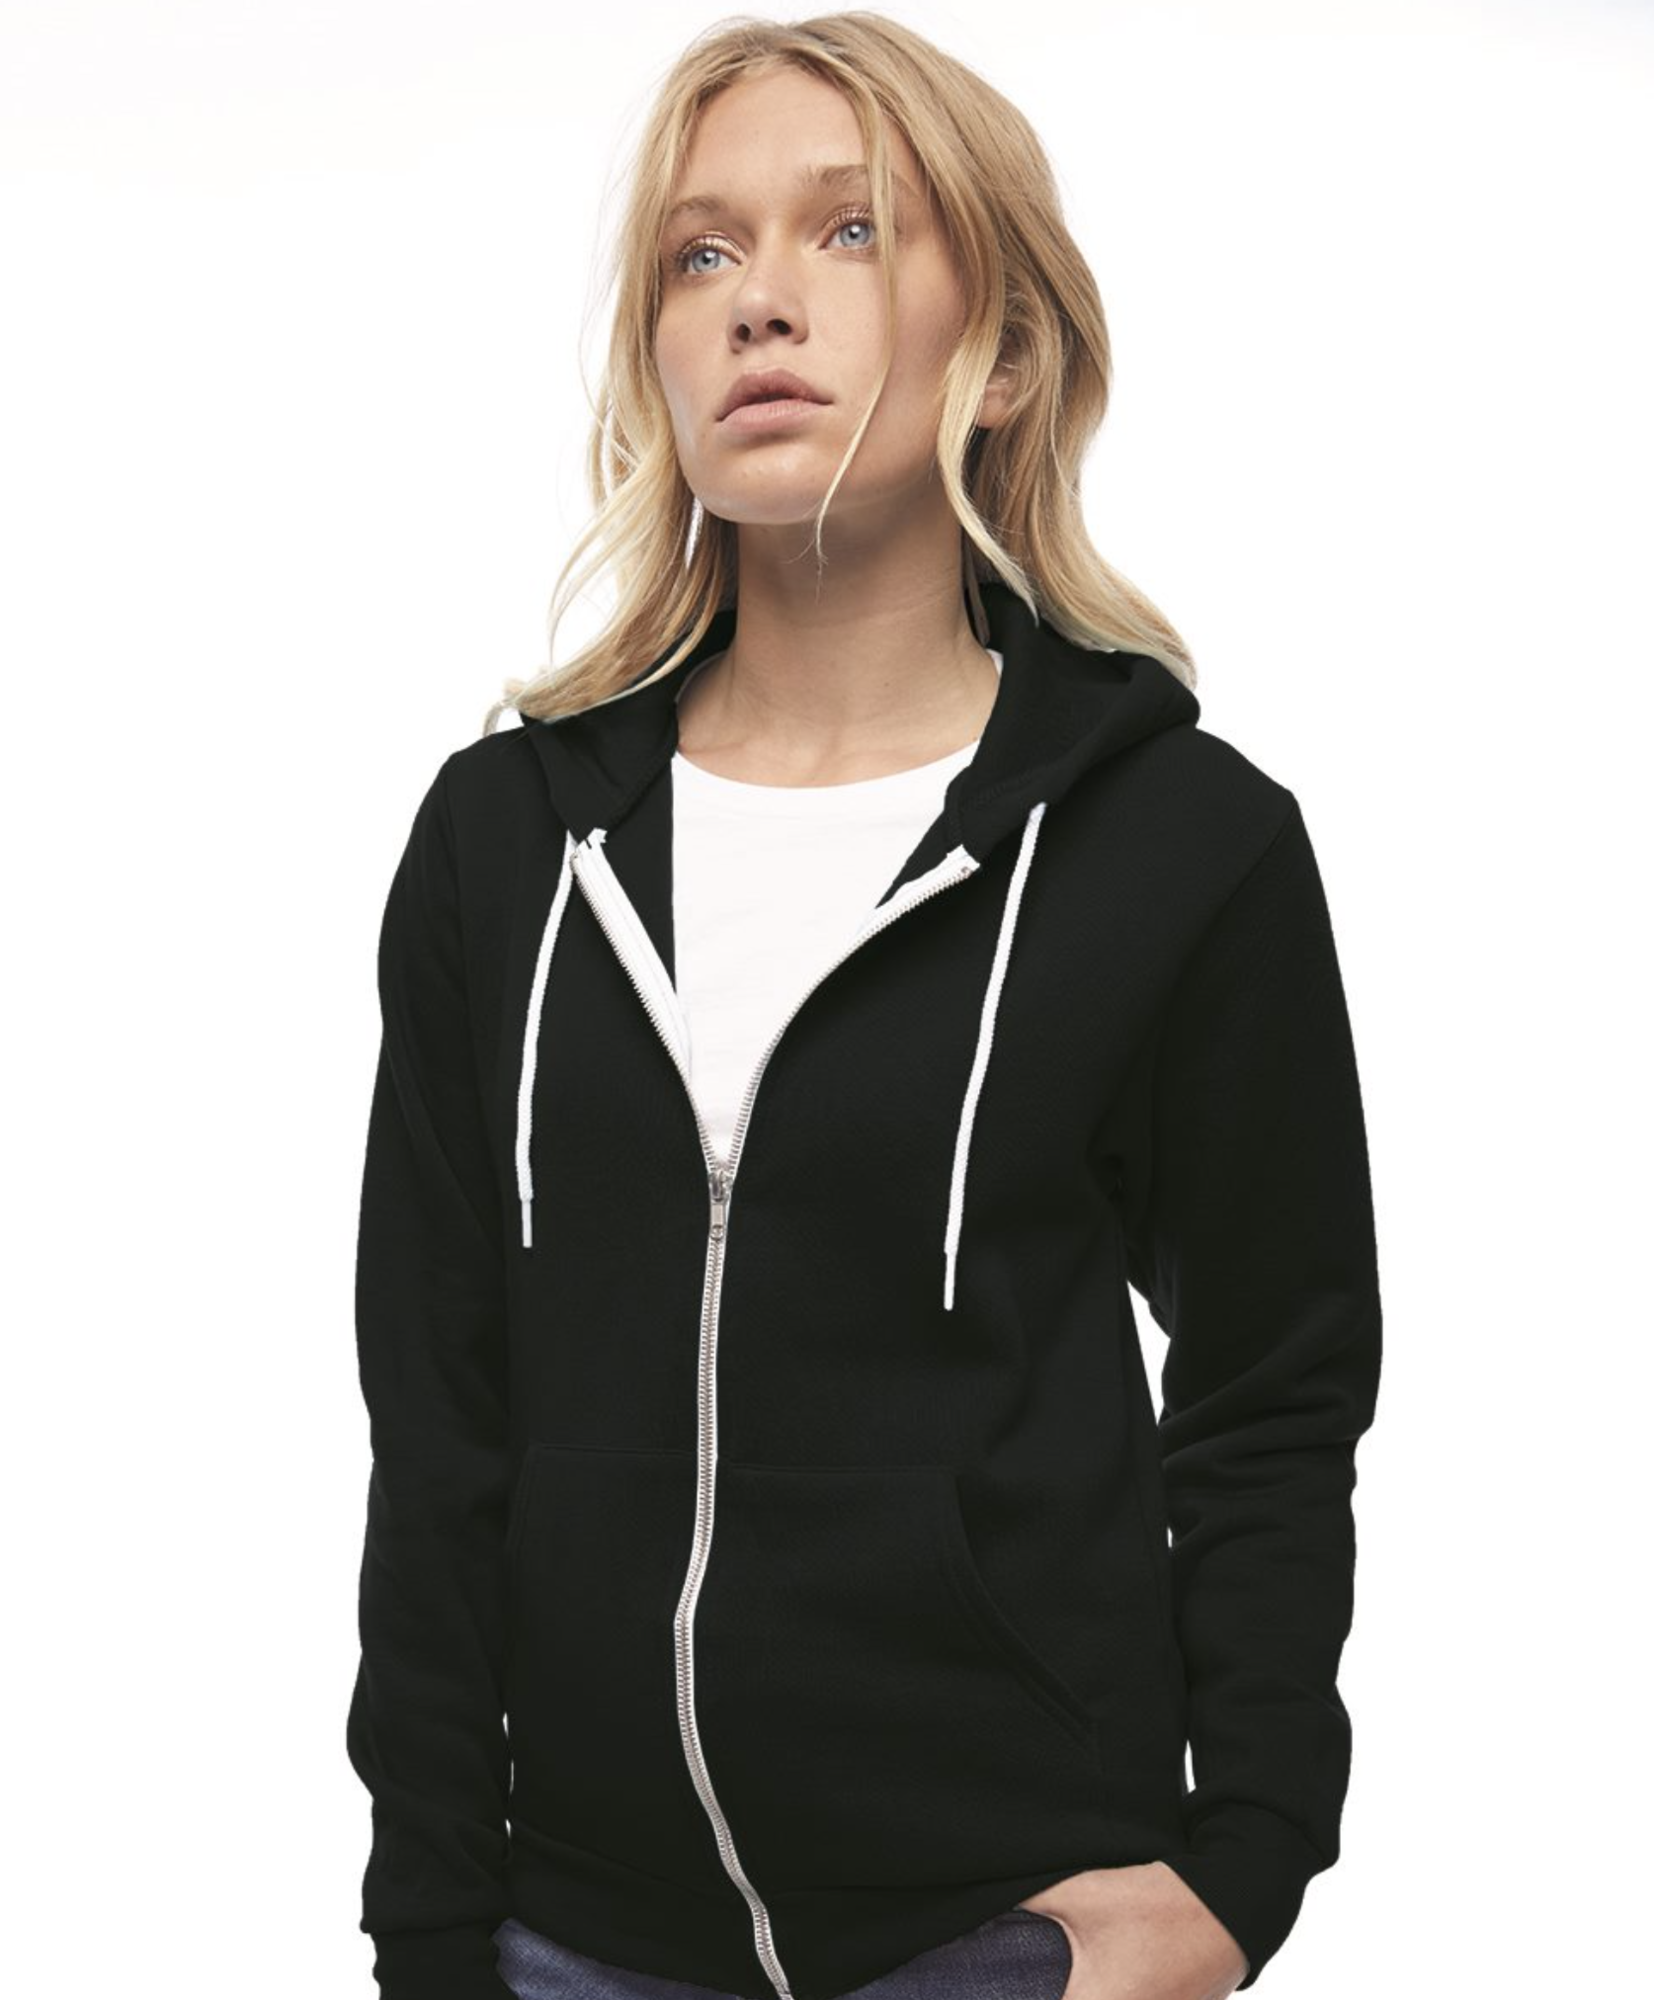 Premium American Apparel - Flex Fleece Unisex Full-Zip Hoodie - F497W